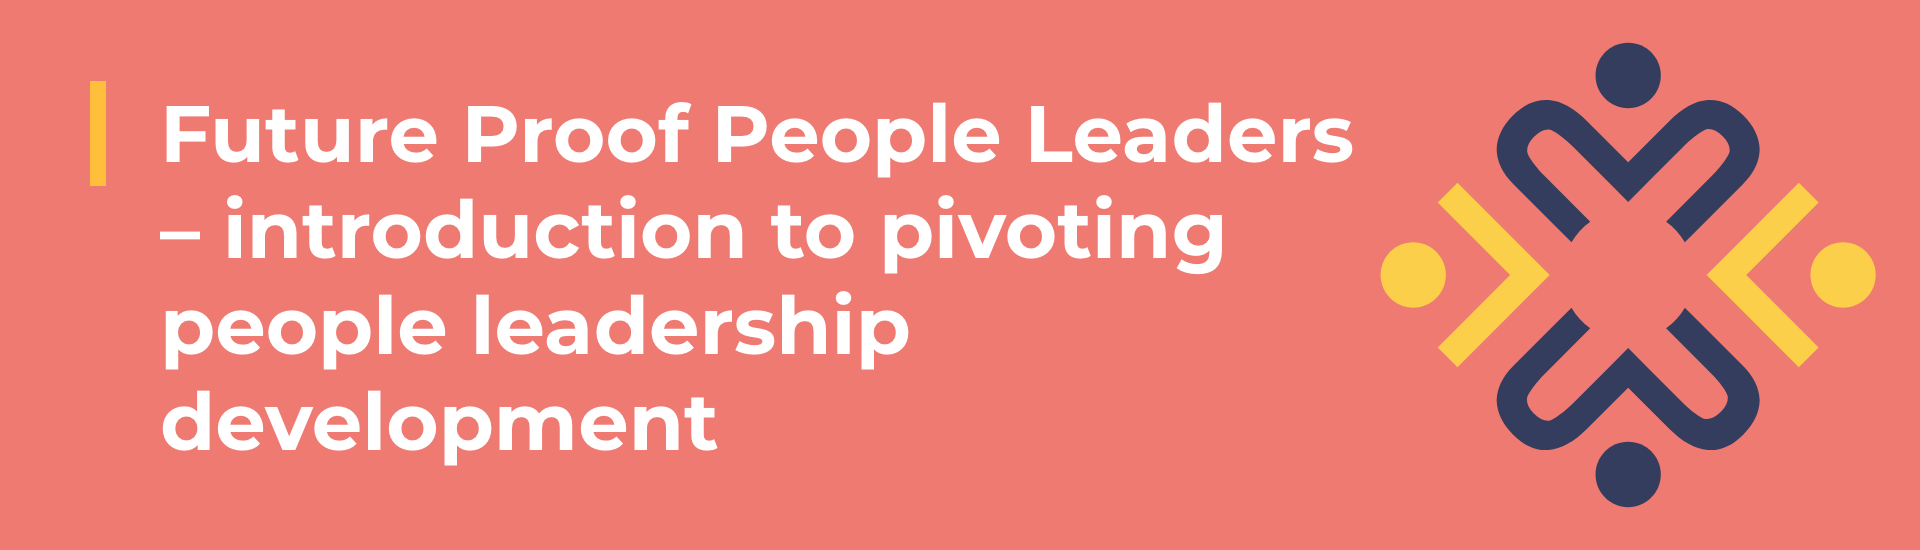 Future Proof People Leaders – introduction to pivoting people leadership capability building